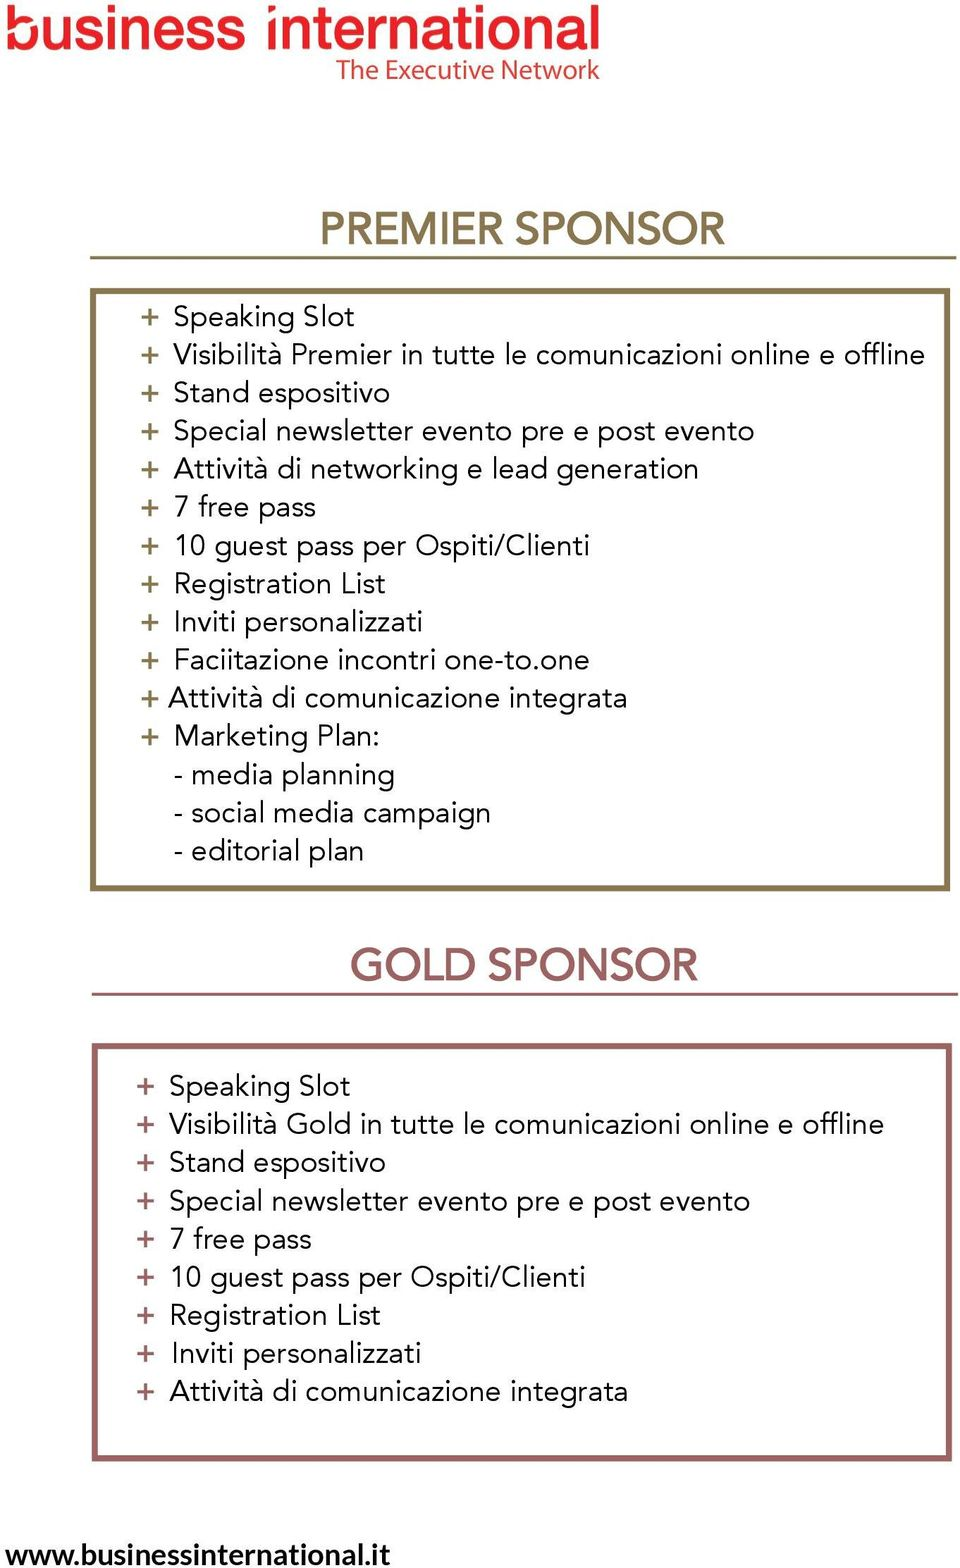 one + Attività di comunicazione integrata + Marketing Plan: - media planning - social media campaign - editorial plan GOLd SPONSOR + Speaking Slot + Visibilità Gold in tutte le